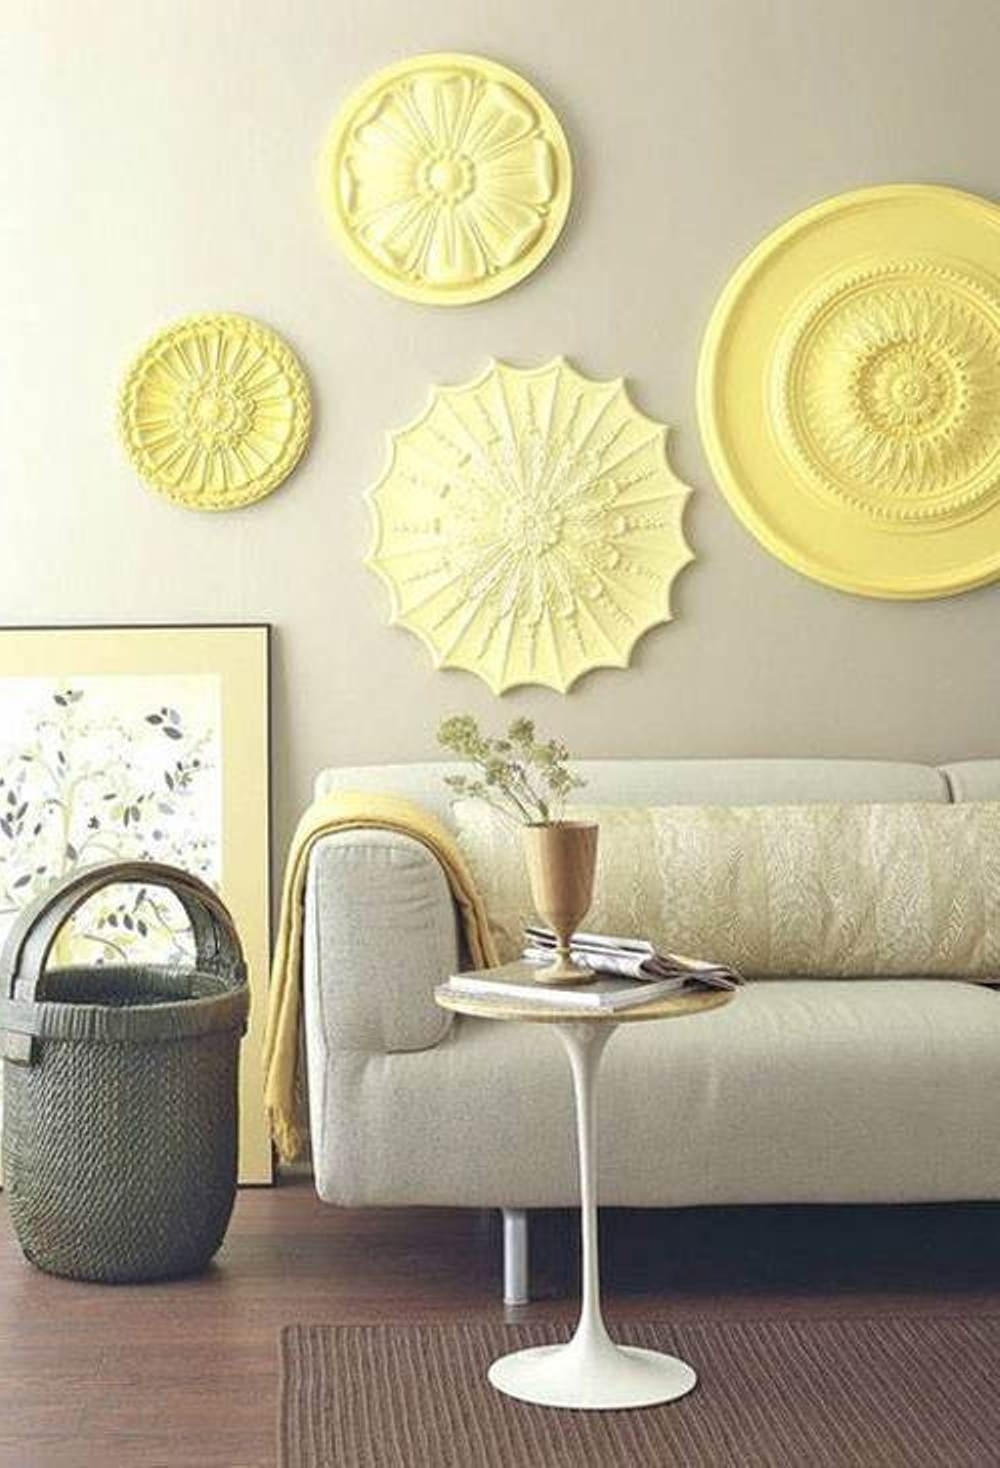 Living Room Wall Art Ideas With Regard To Warm | Paxlife Designs Inside Most Popular Wall Art Ideas For Living Room (Gallery 17 of 20)